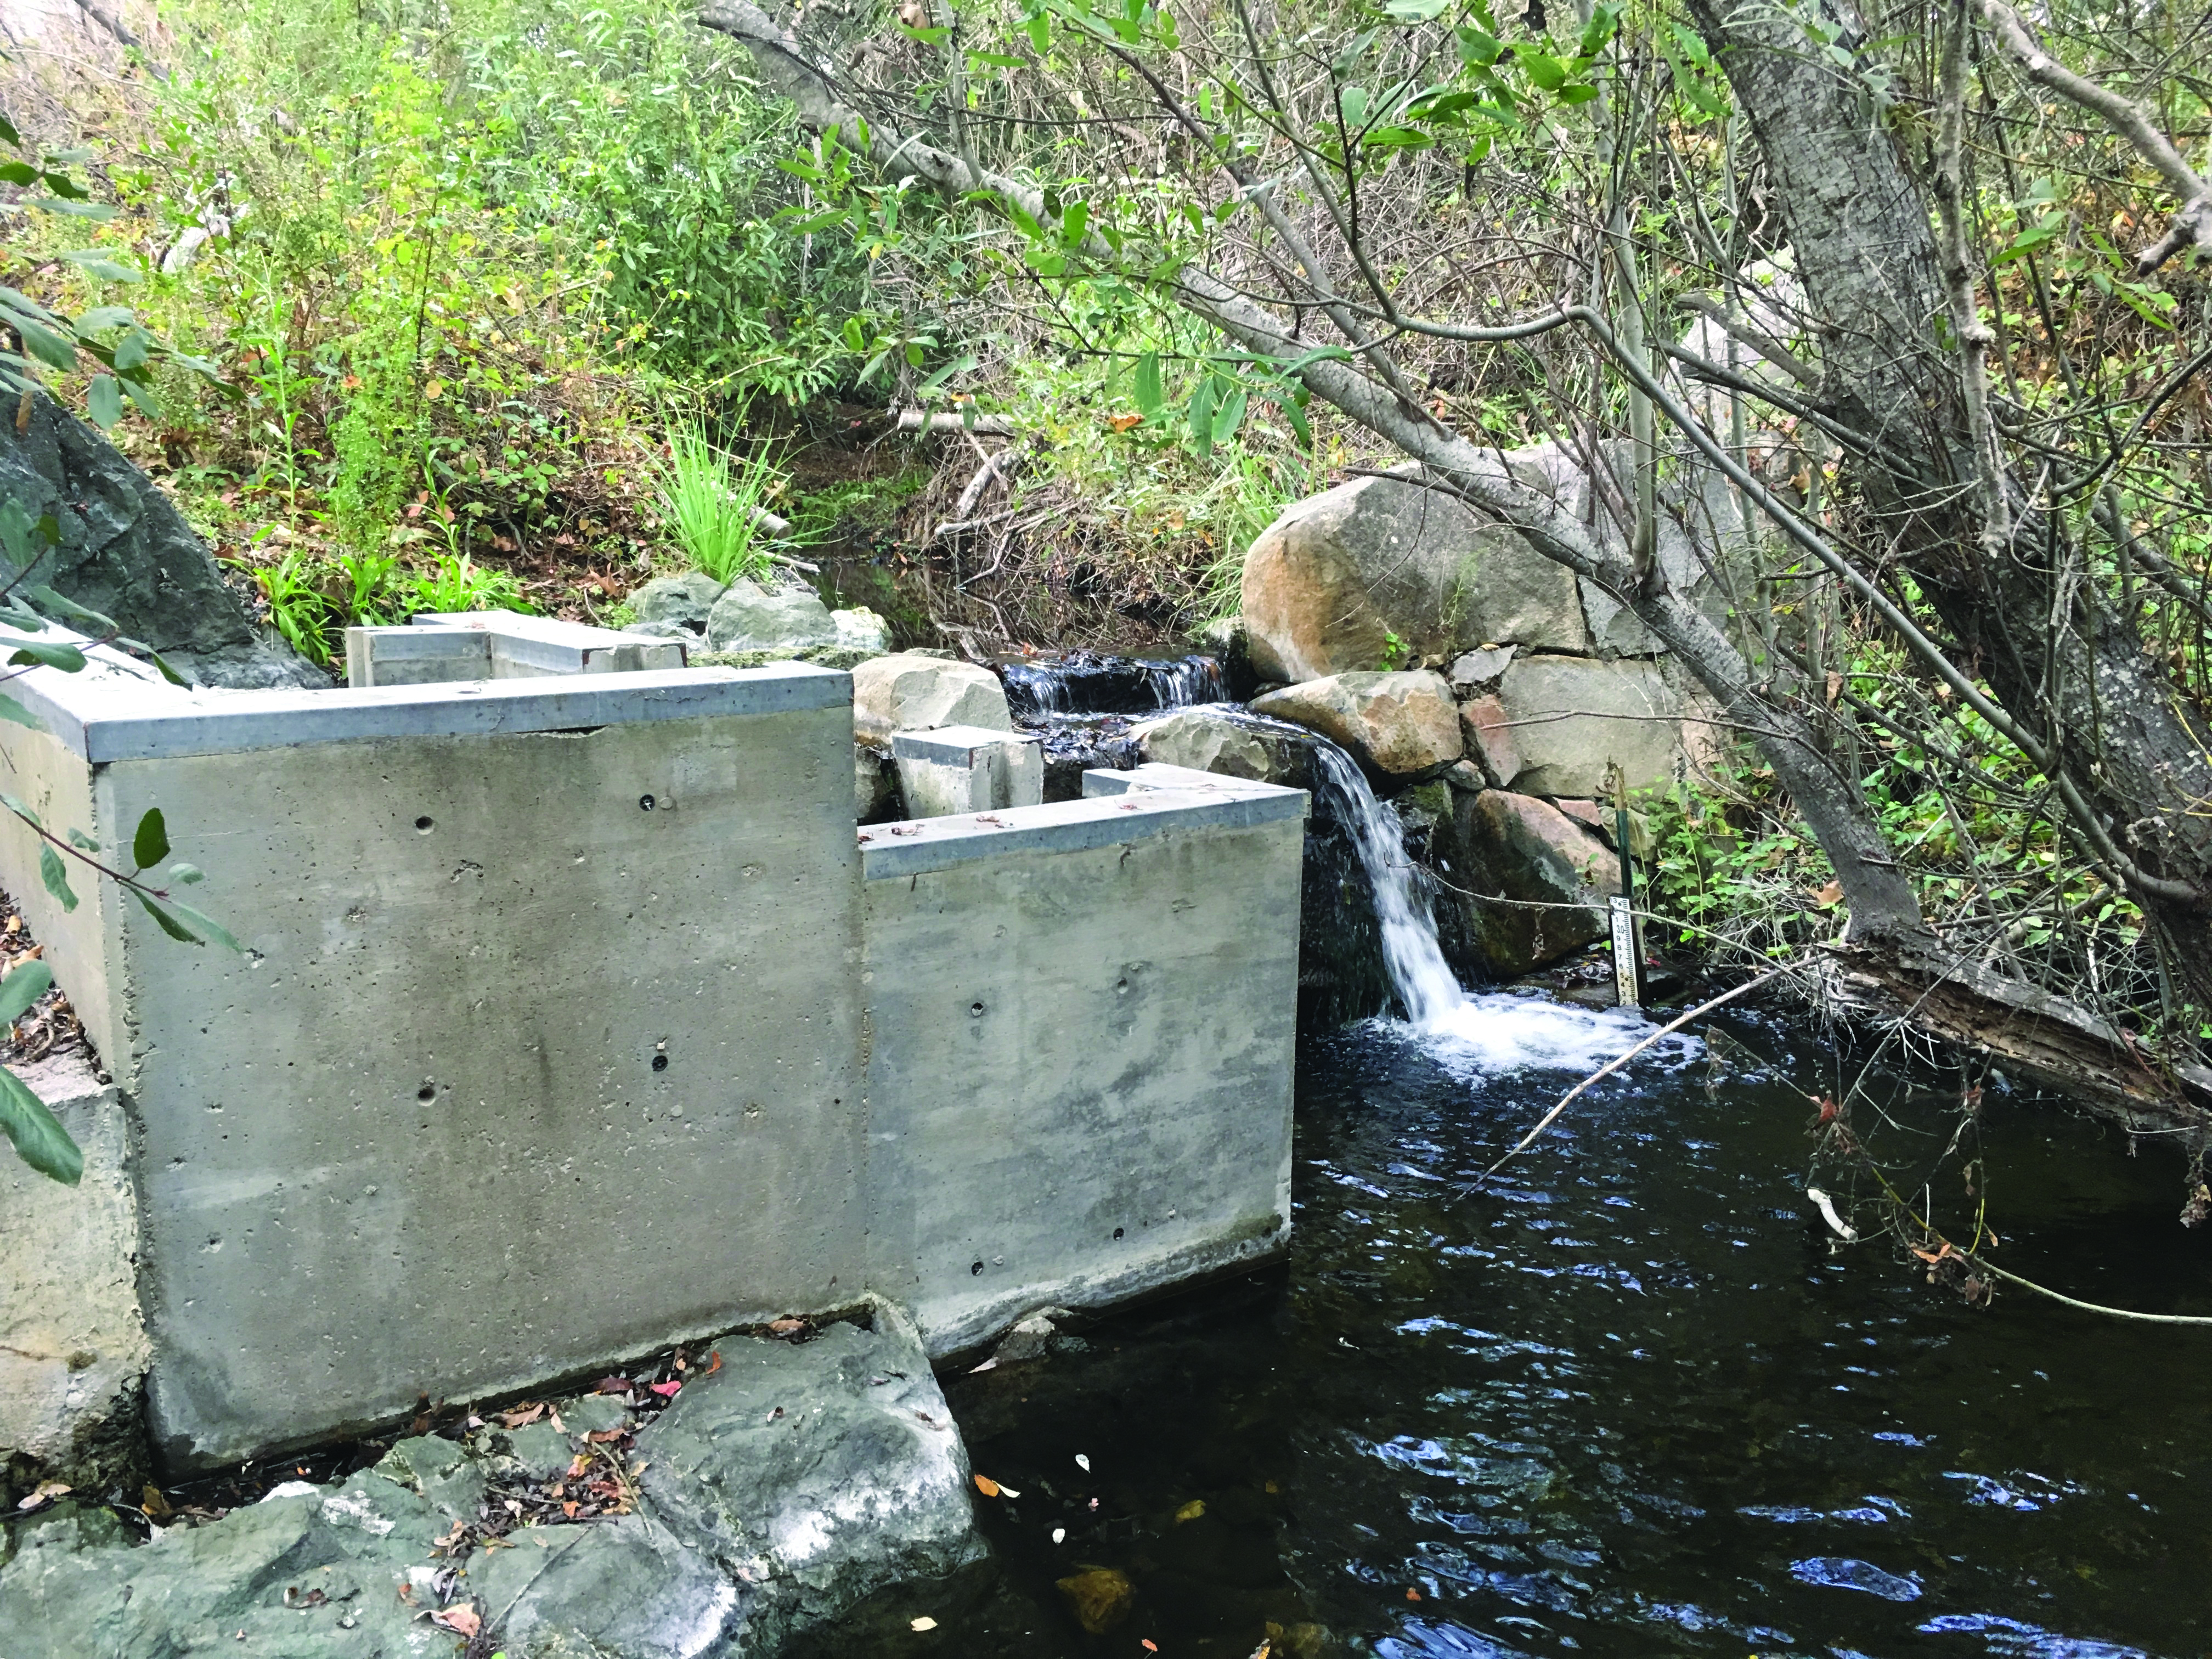 Construction begins next summer to replace this aging concrete passage structure so that fish can access the high quality habitat located upstream.